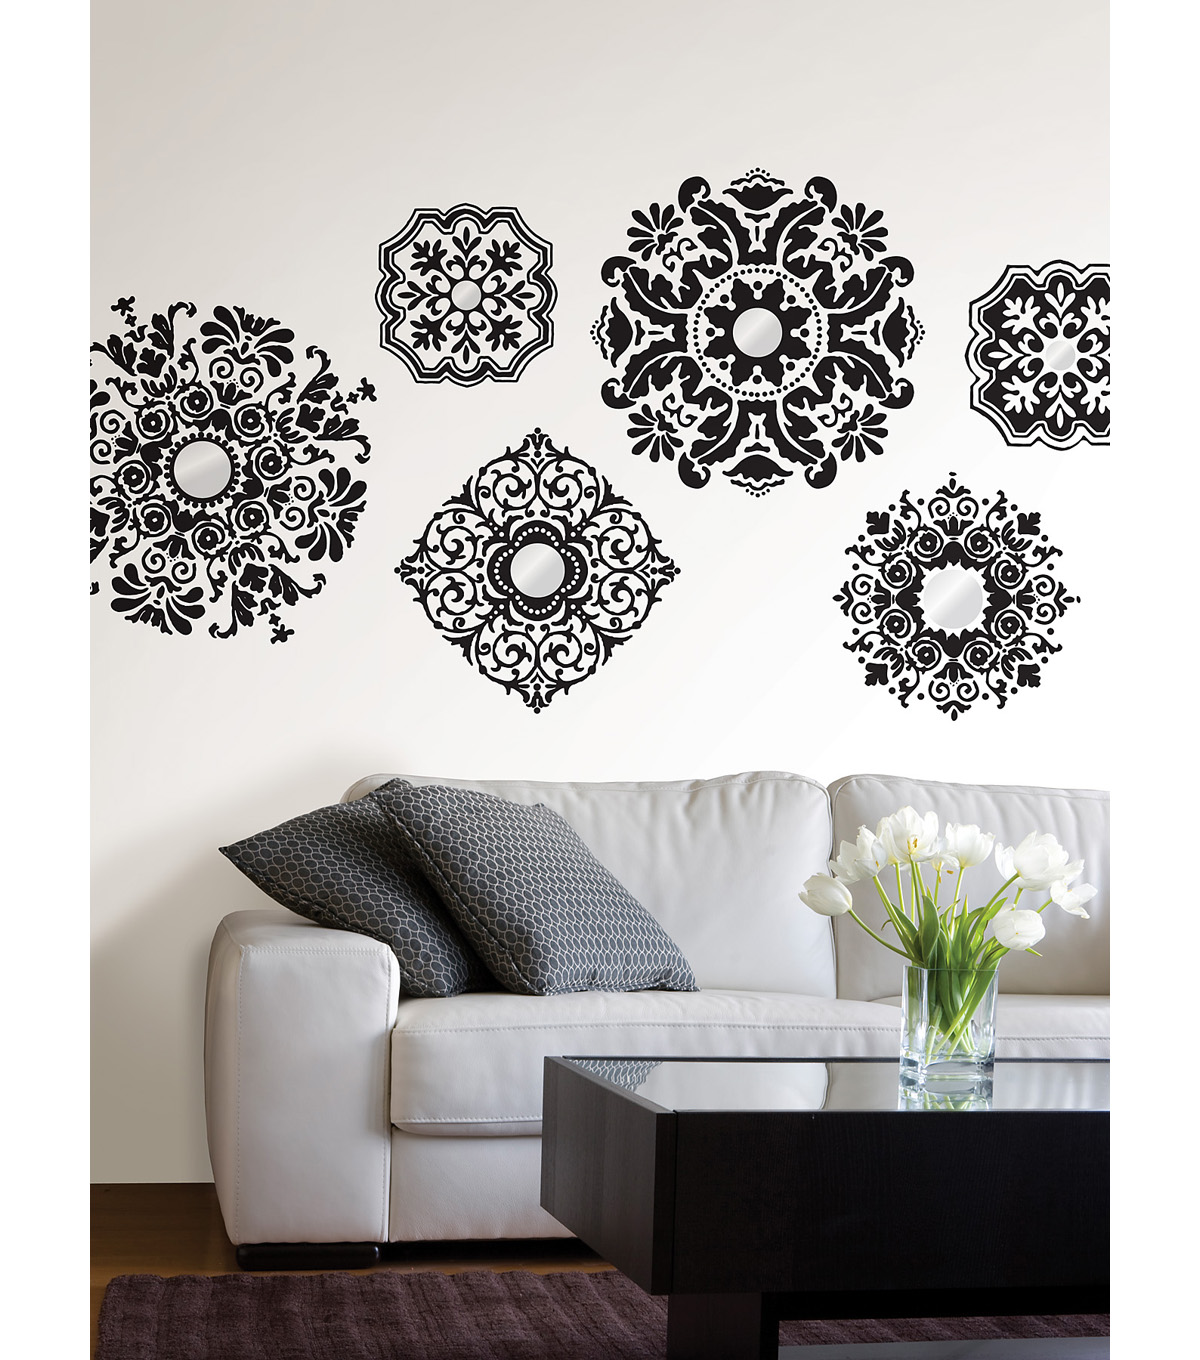 Wall Pops Baroque Mirrored Wall Art Decal Kit, 6 Piece Set